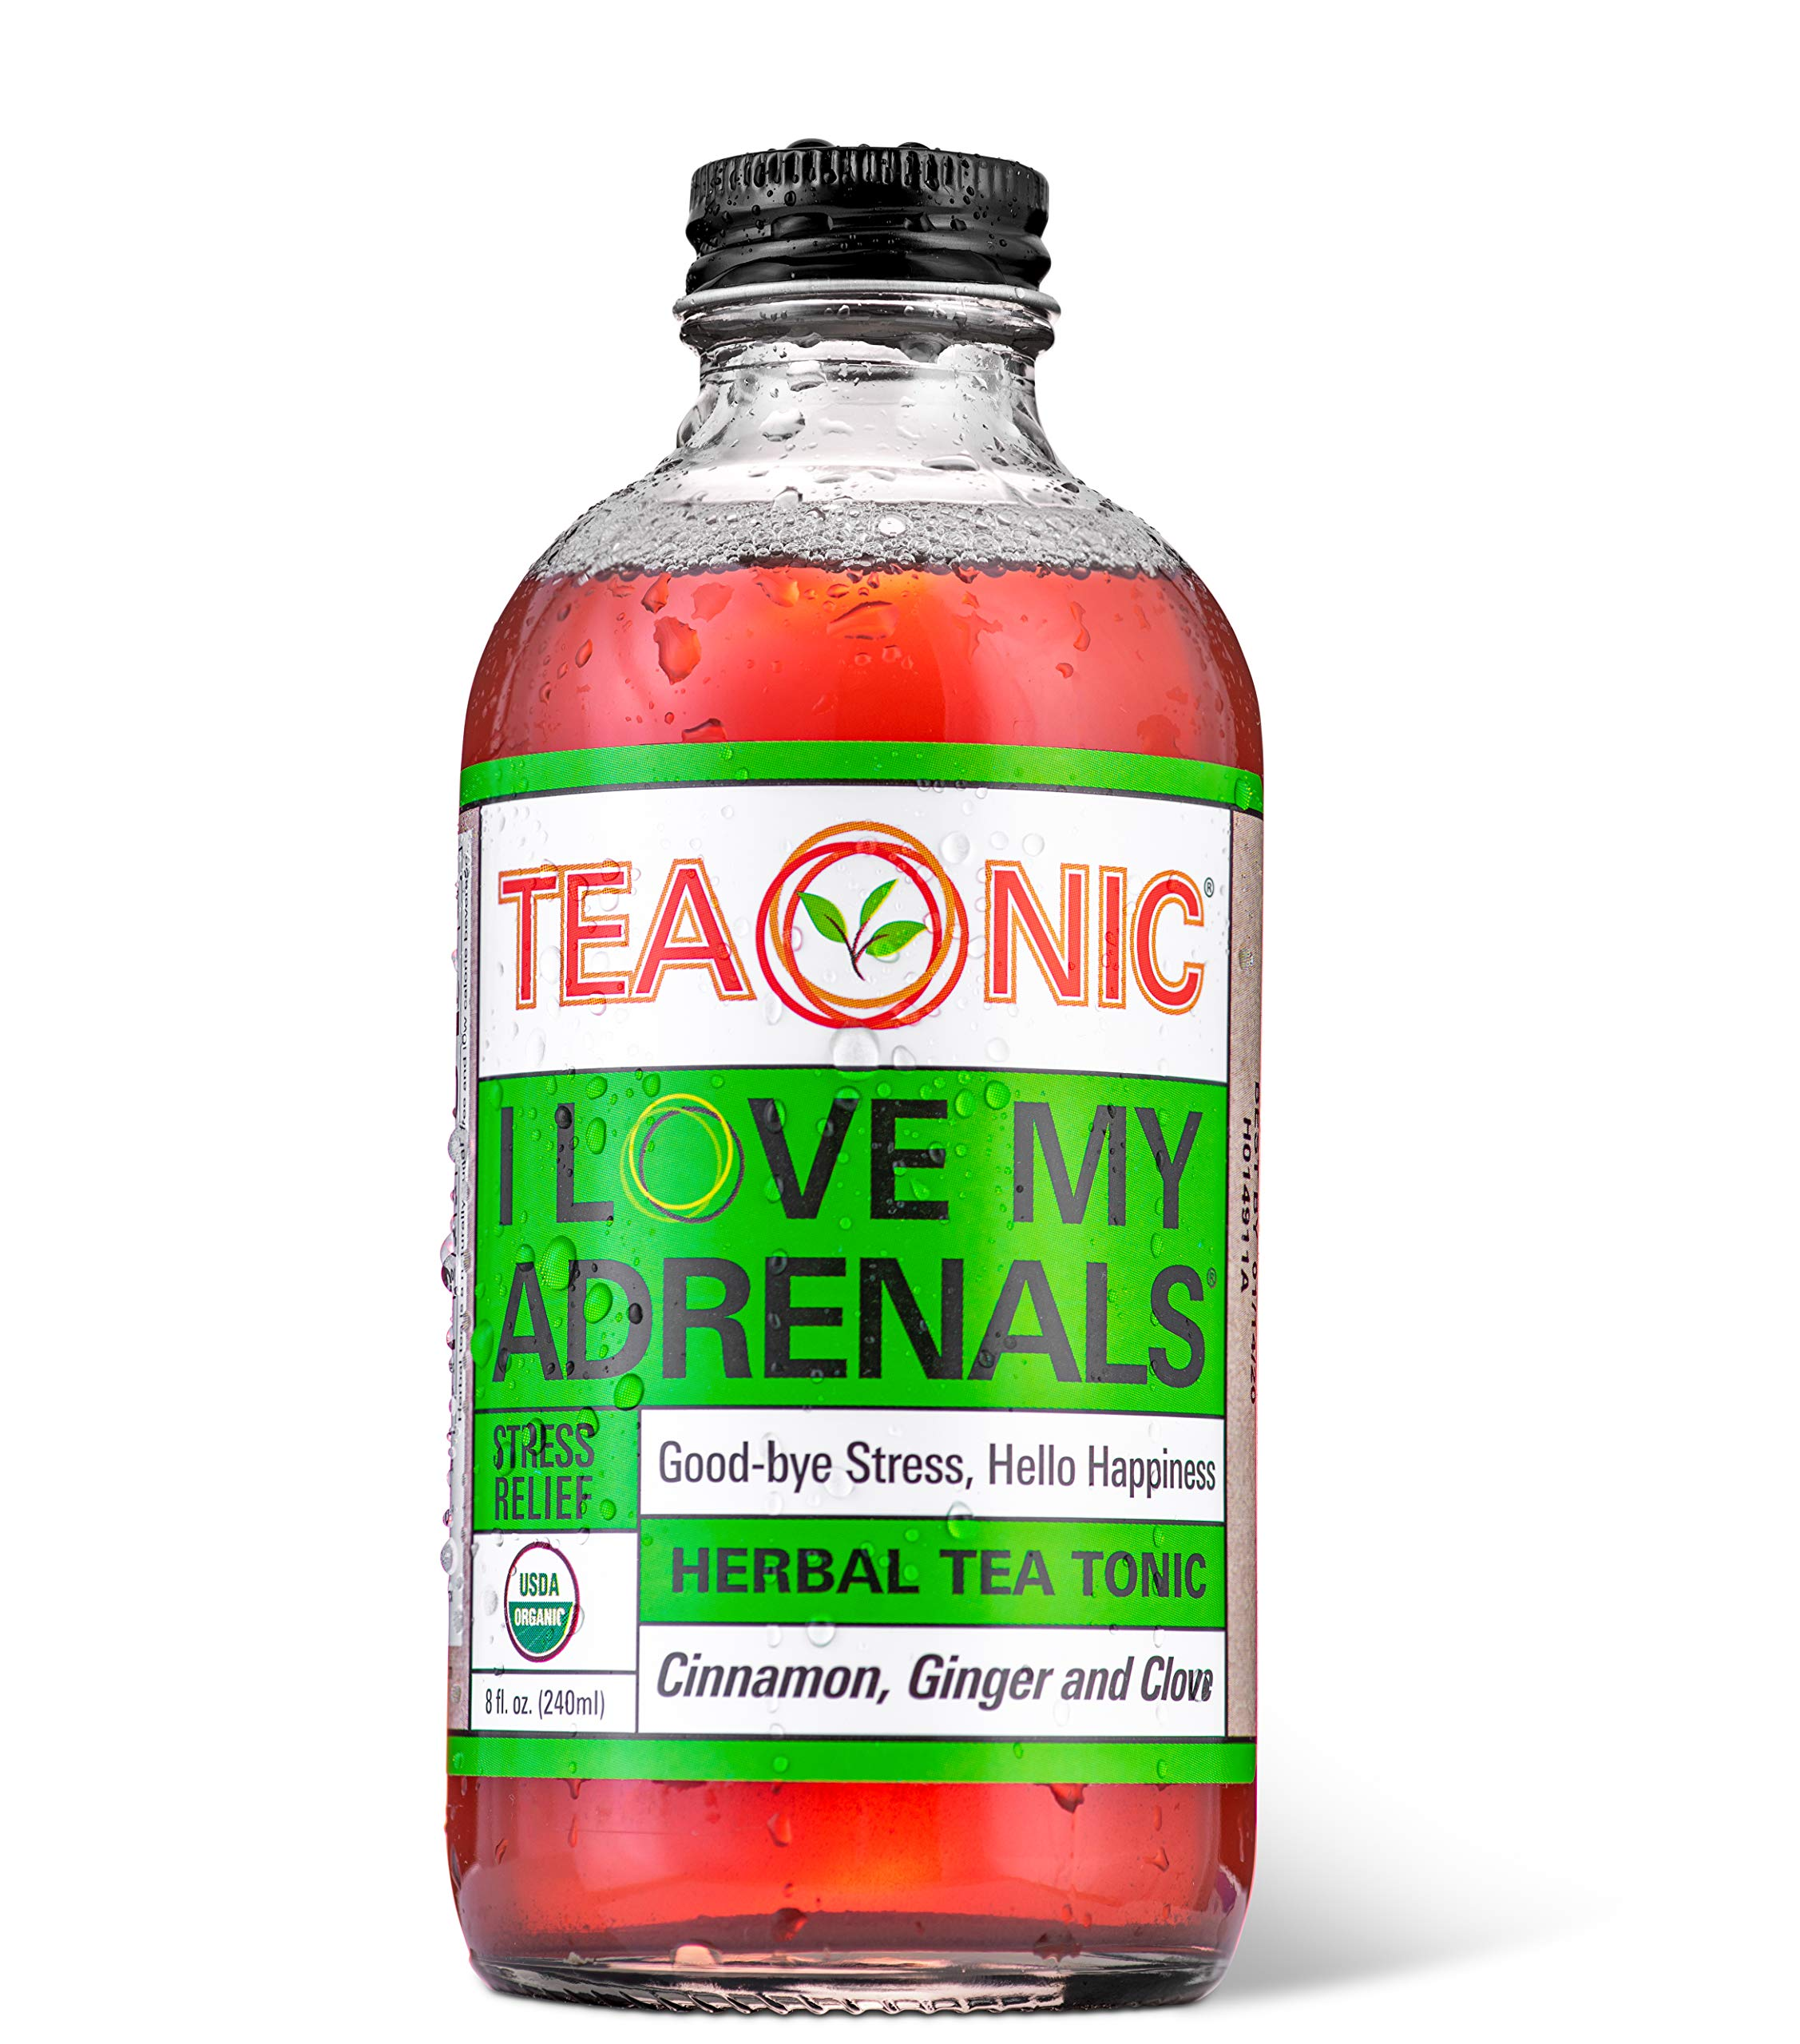 Teaonic I Love My Adrenals, Stress Relief, Calming and Relaxing, Organic, Natural, Caffeine-Free, Handcrafted Brewed Herbal Unsweetened Tea, Adaptogens, Cinnamon, Ginger, Clove, 8oz (Pack of 12) by TEAONIC